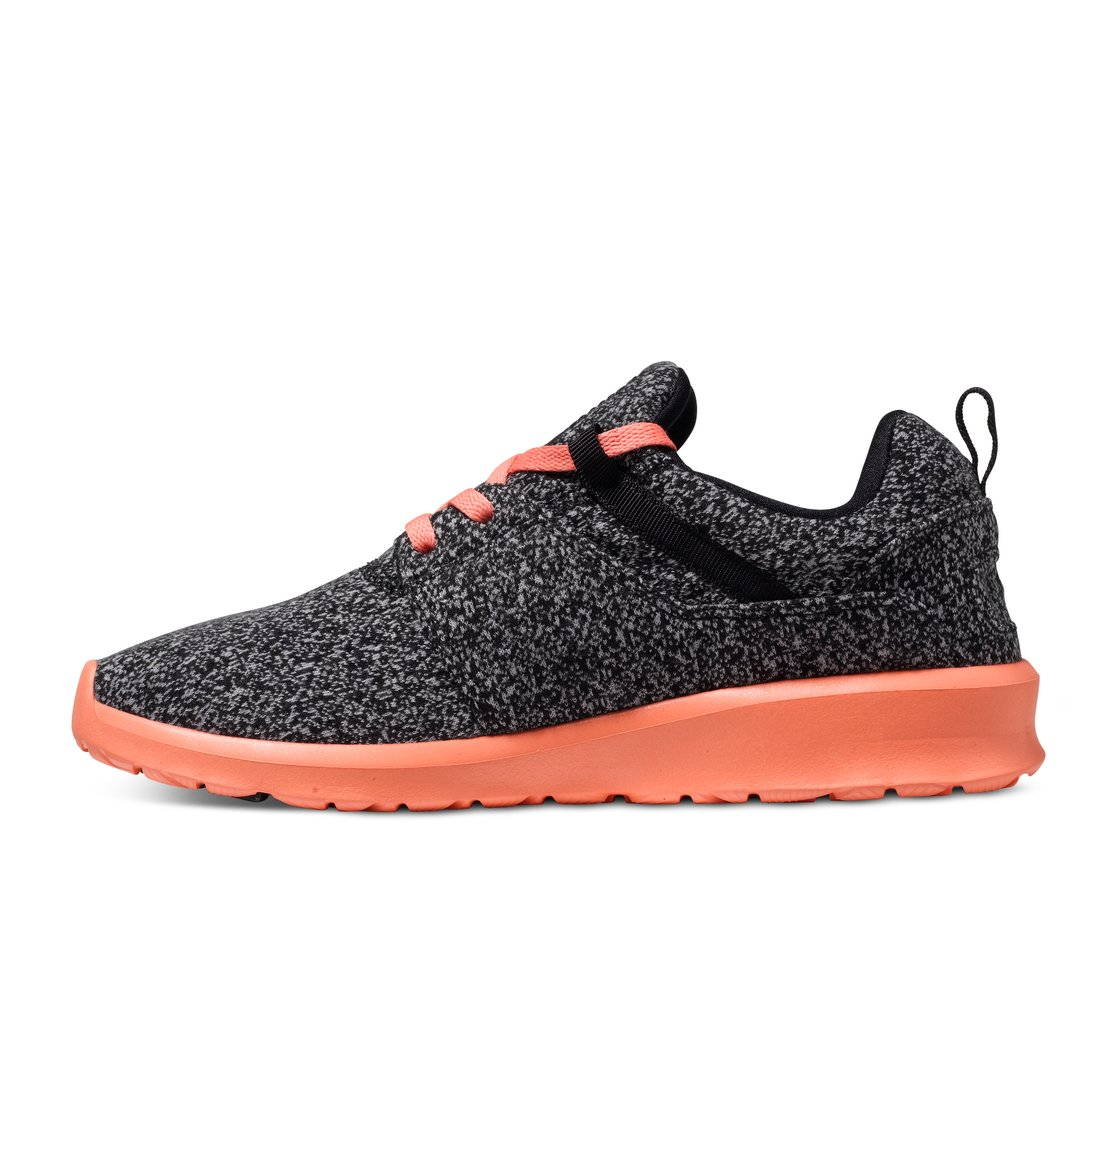 DC-Shoes-Heathrow-SE-Chaussures-pour-Femme-ADJS700022